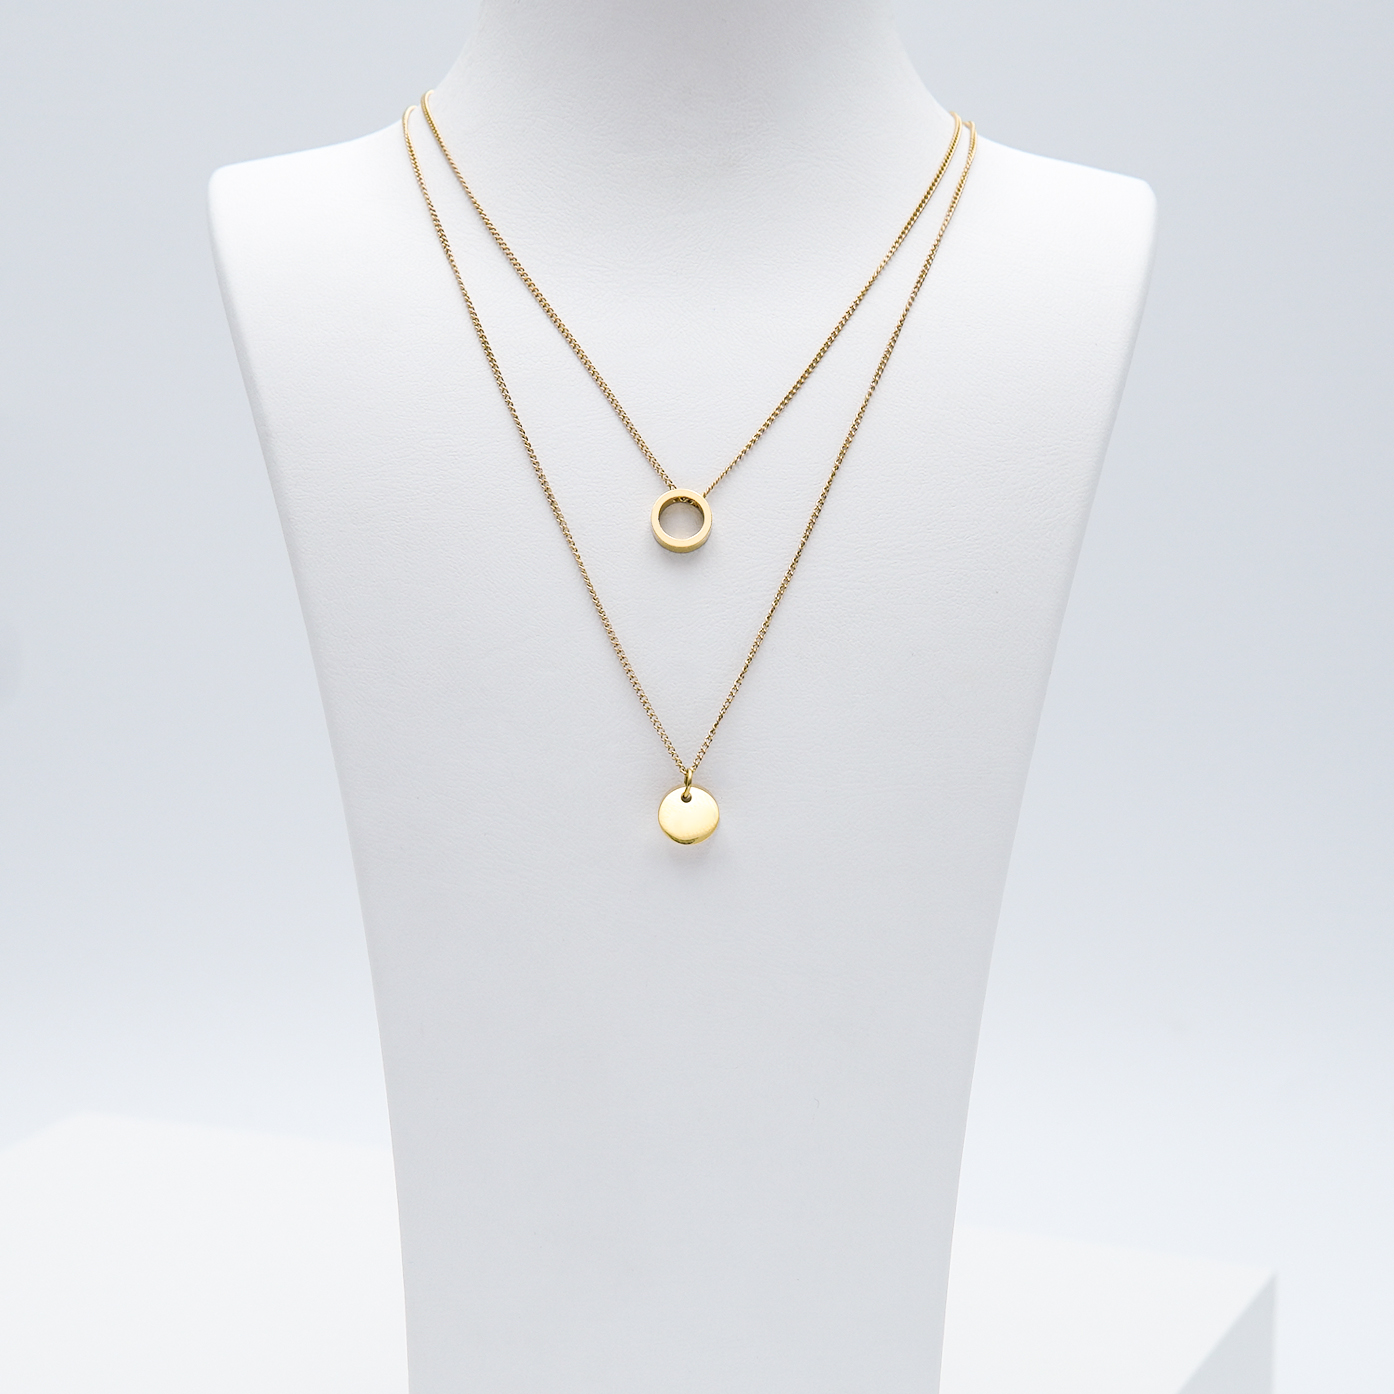 1- Just For You Gold Edition Halsband Modern and trendy Necklace and women jewelry and accessories from SWEVALI fashion Sweden